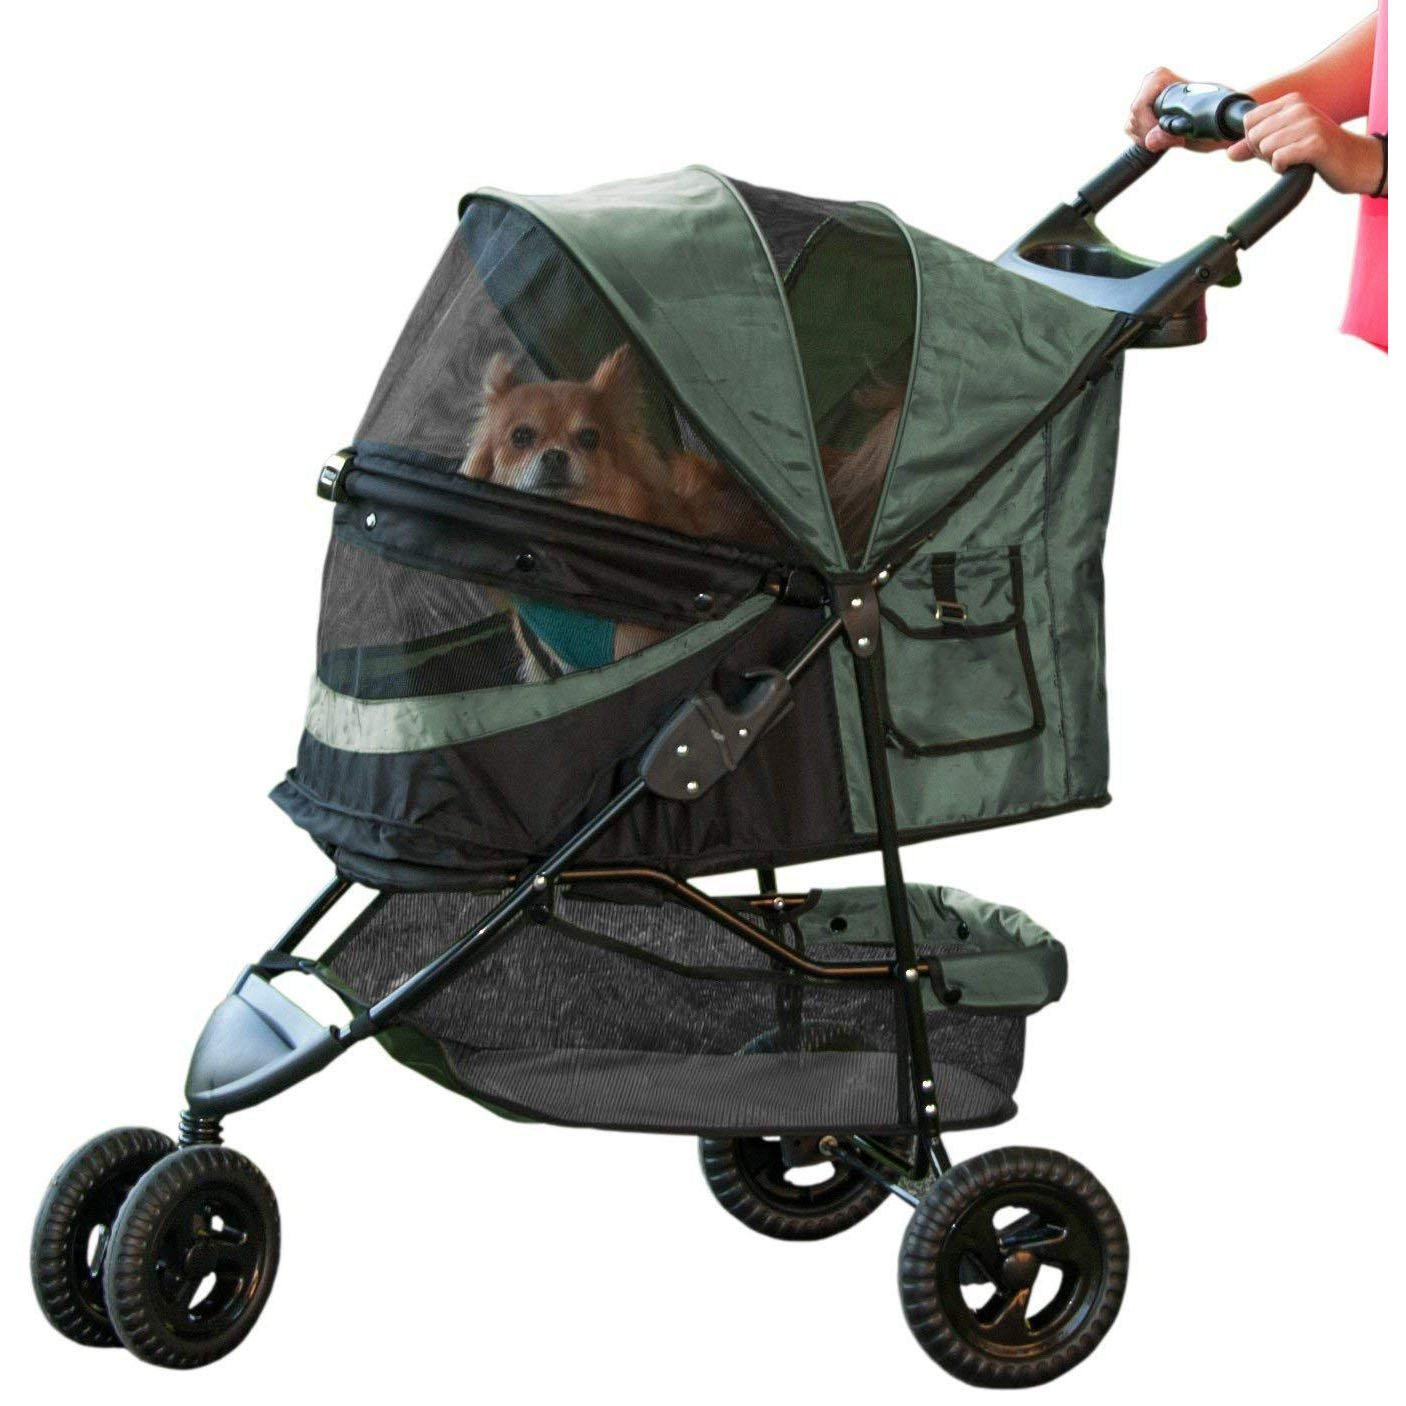 3 Wheel Pet Stroller for Cats/Dogs